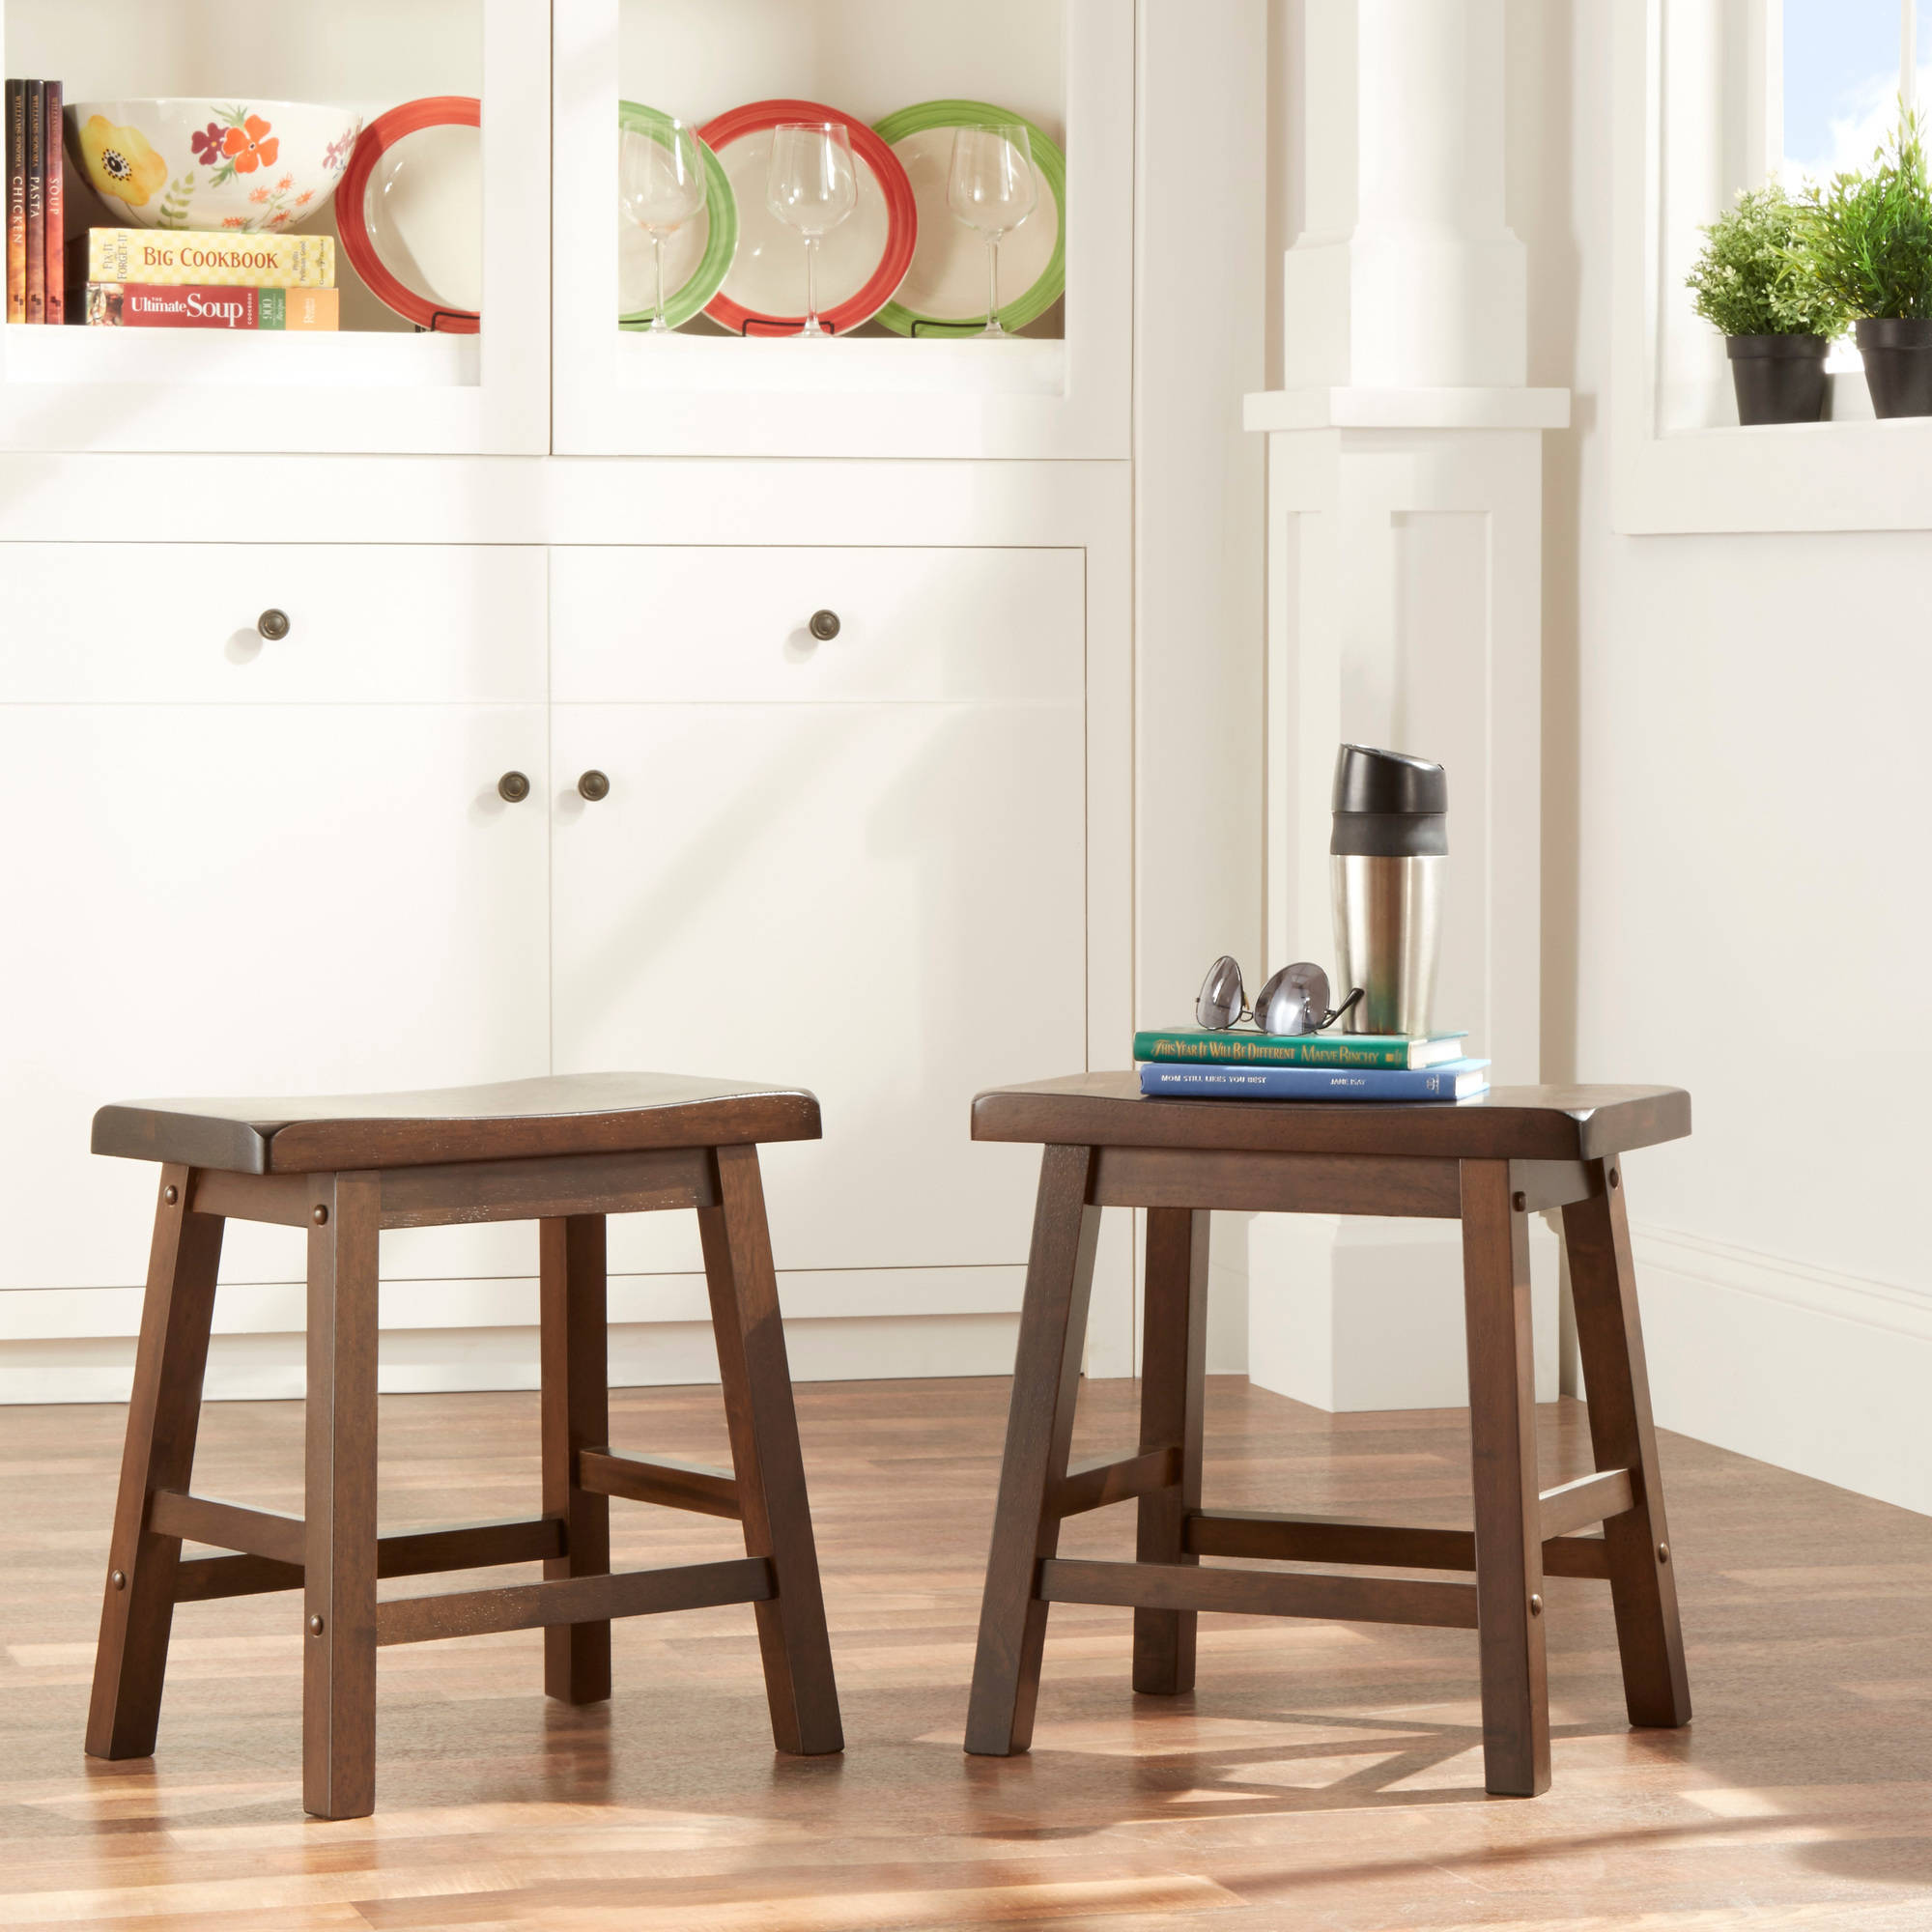 & Ashby Kitchen Stools 18u0027u0027 Set of 2 Walnut - Walmart.com islam-shia.org